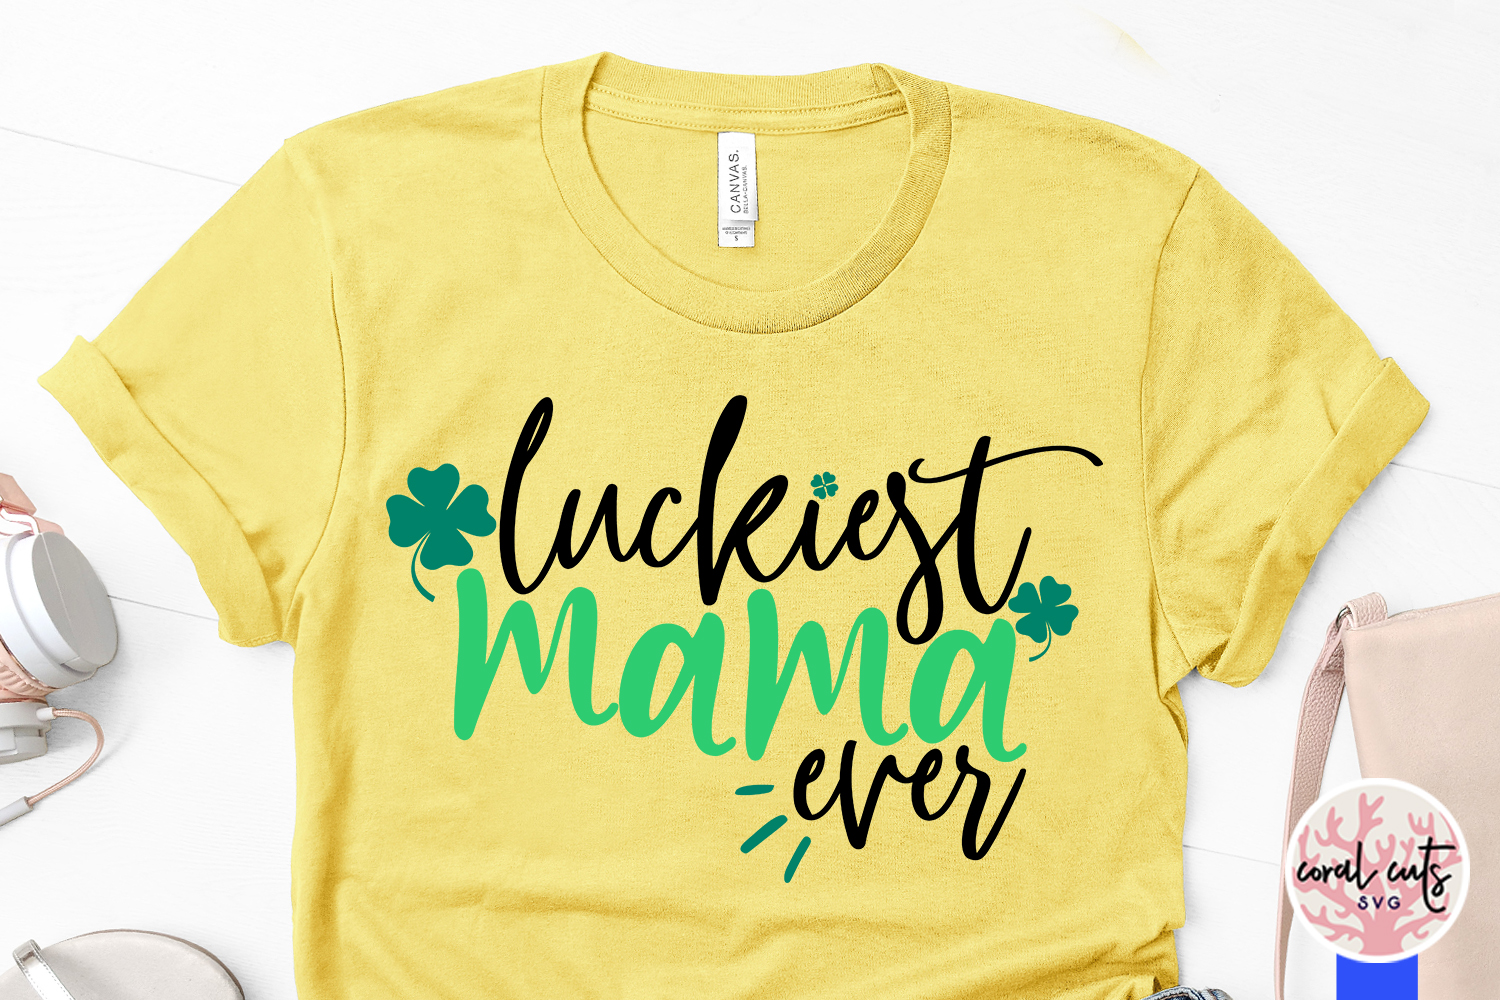 Luckiest mama ever - St. Patrick's Day SVG EPS DXF PNG example image 3